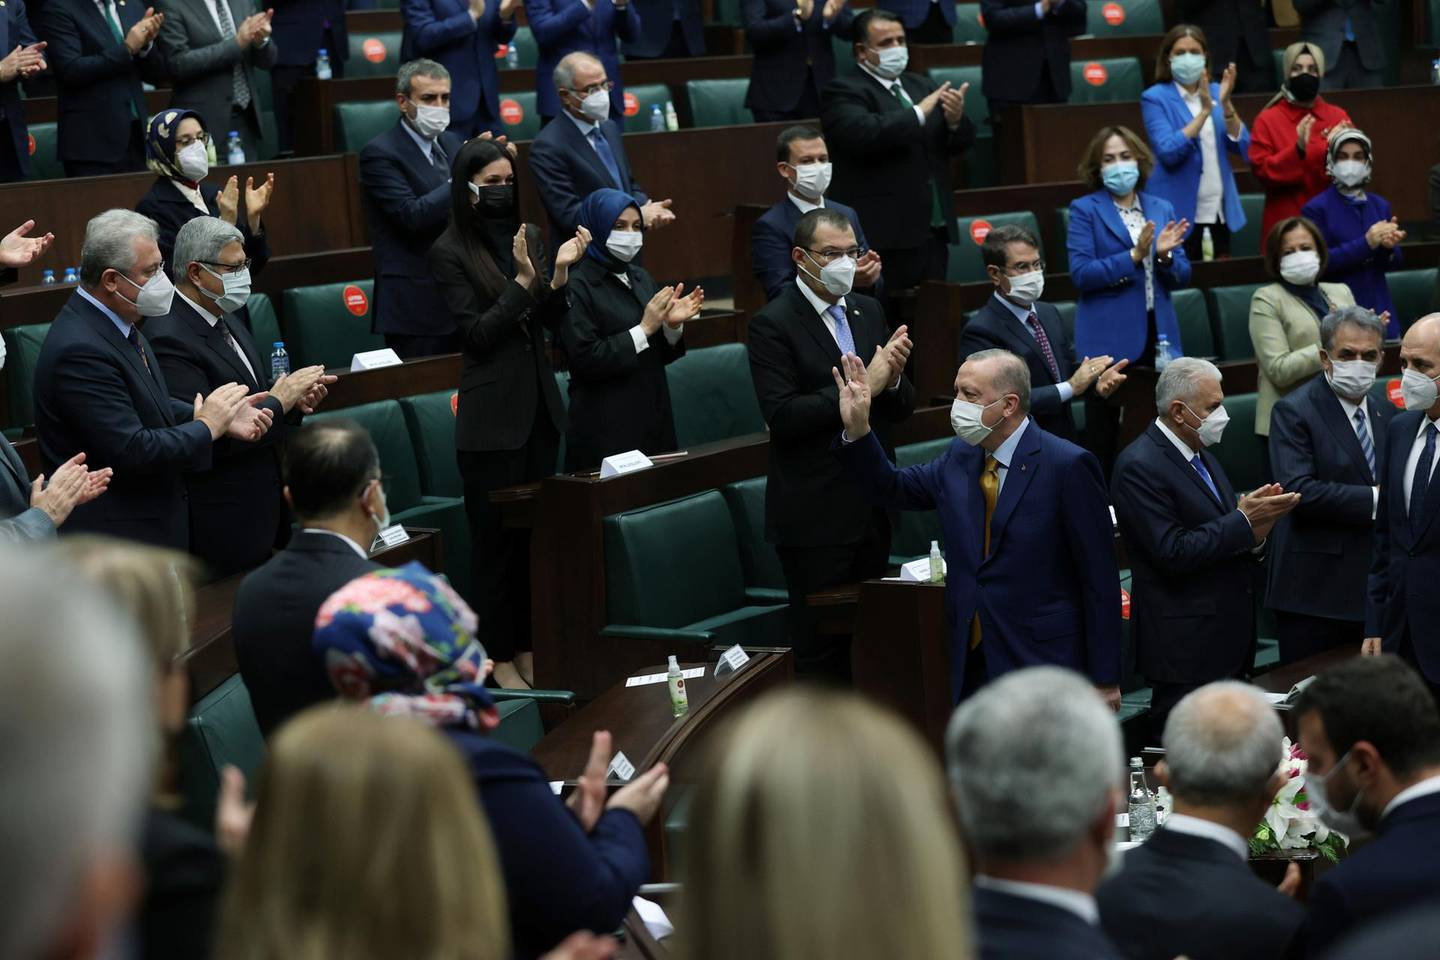 Turkish President Tayyip Erdogan greets members of his ruling AK Party during a meeting at the parliament?in Ankara, Turkey, December 23, 2020. Presidential Press Office/Handout via REUTERS ATTENTION EDITORS - THIS PICTURE WAS PROVIDED BY A THIRD PARTY. NO RESALES. NO ARCHIVE.